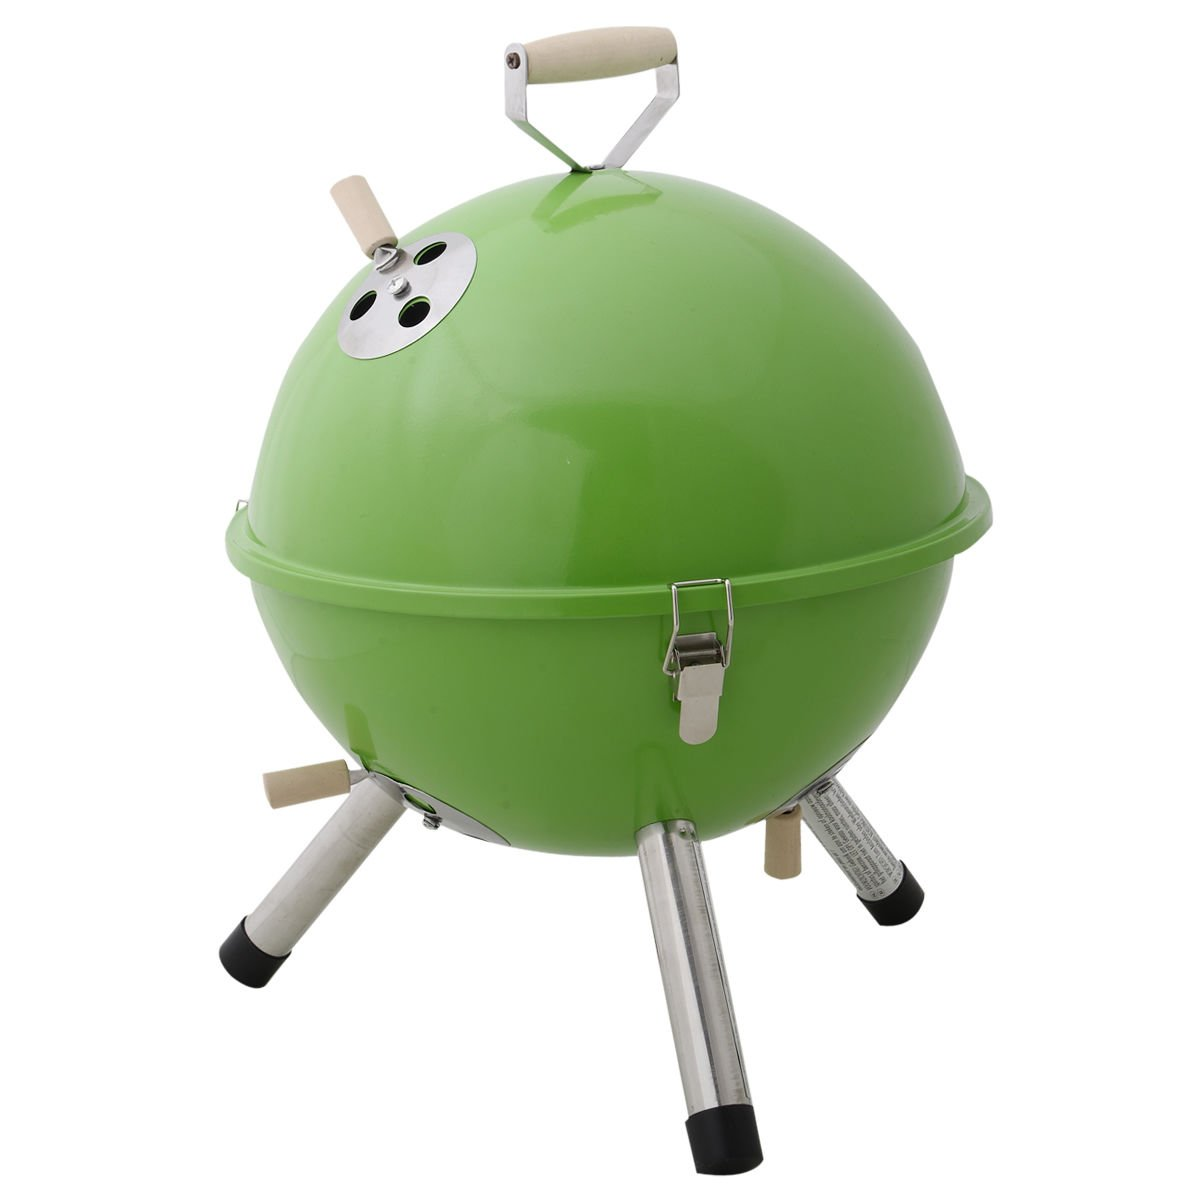 charcoal grill kettle - TOOGOO(R)portable bbq round barbecue grill charcoal garden travel outdoor & home& camping